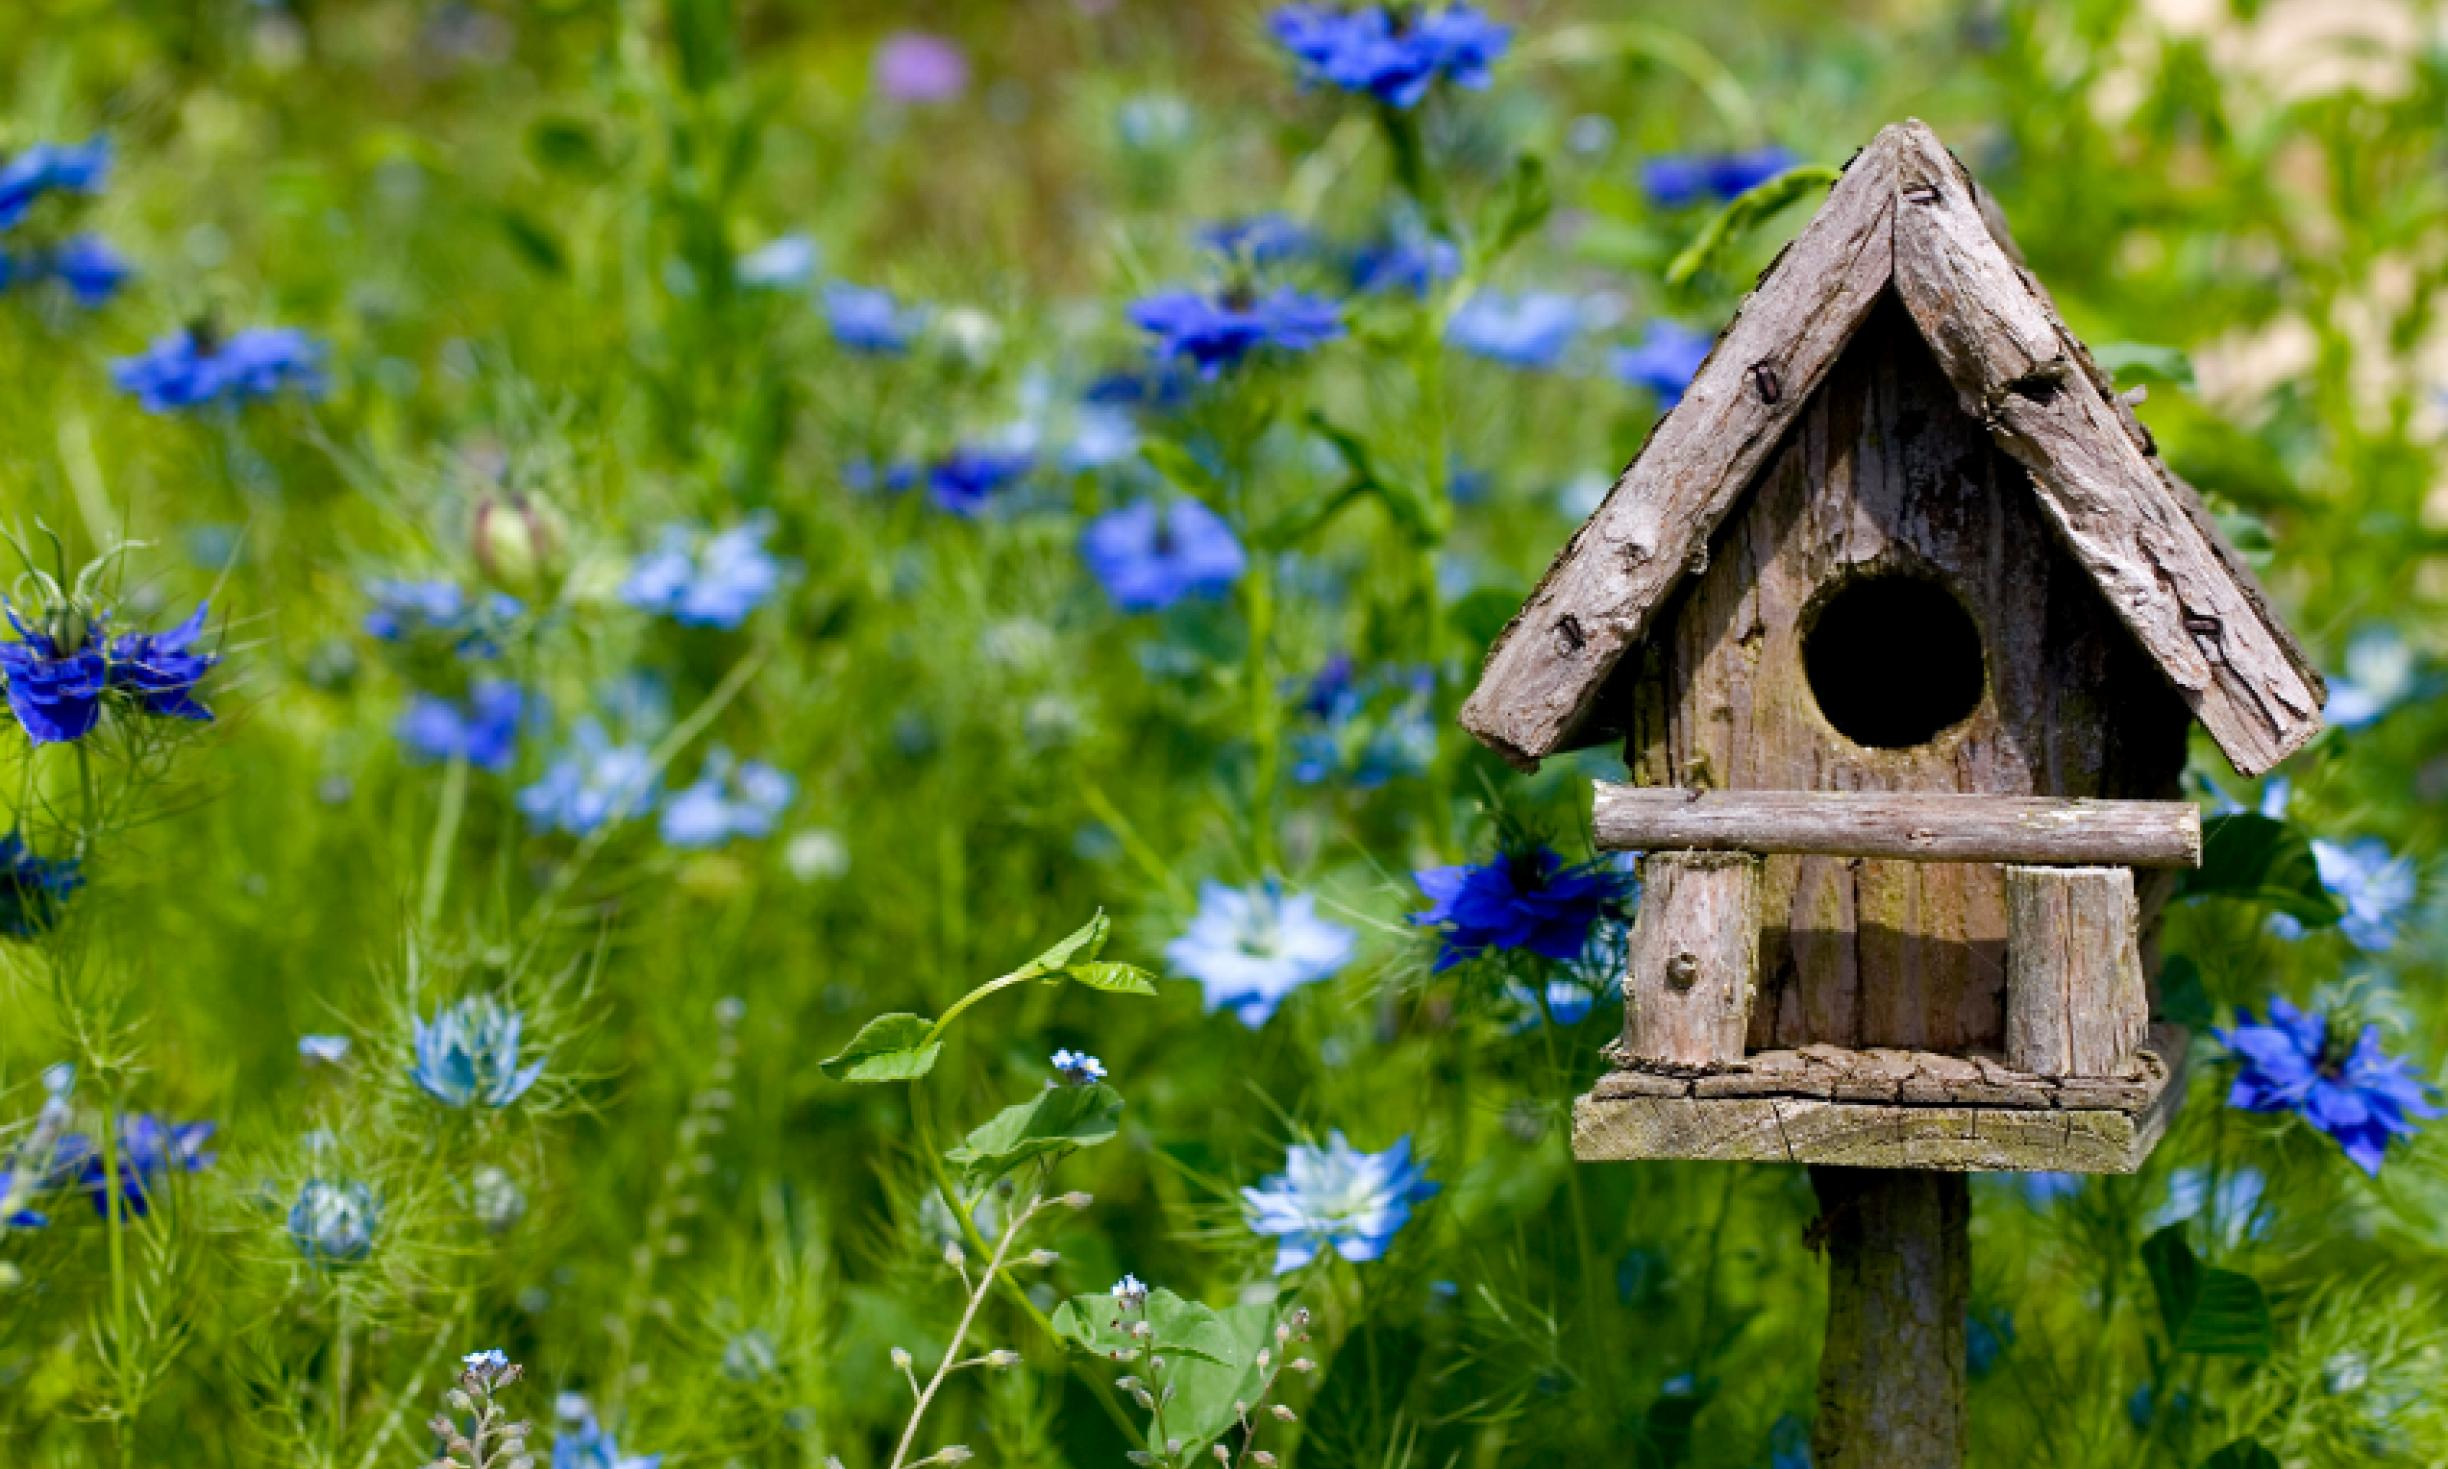 green field with many blue flowers, small wooden bird house, with round door